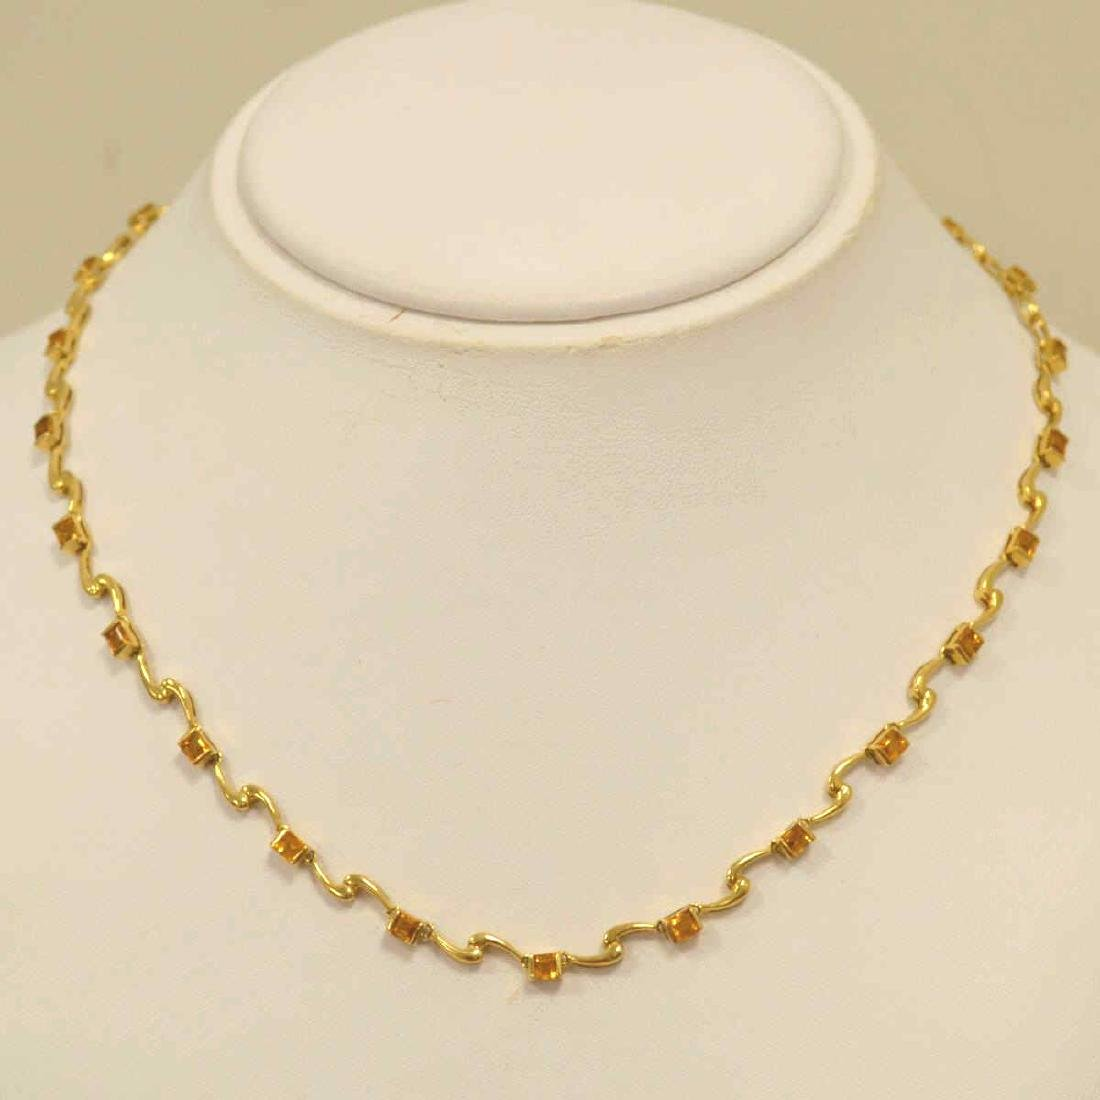 18kt yellow gold citrine necklace